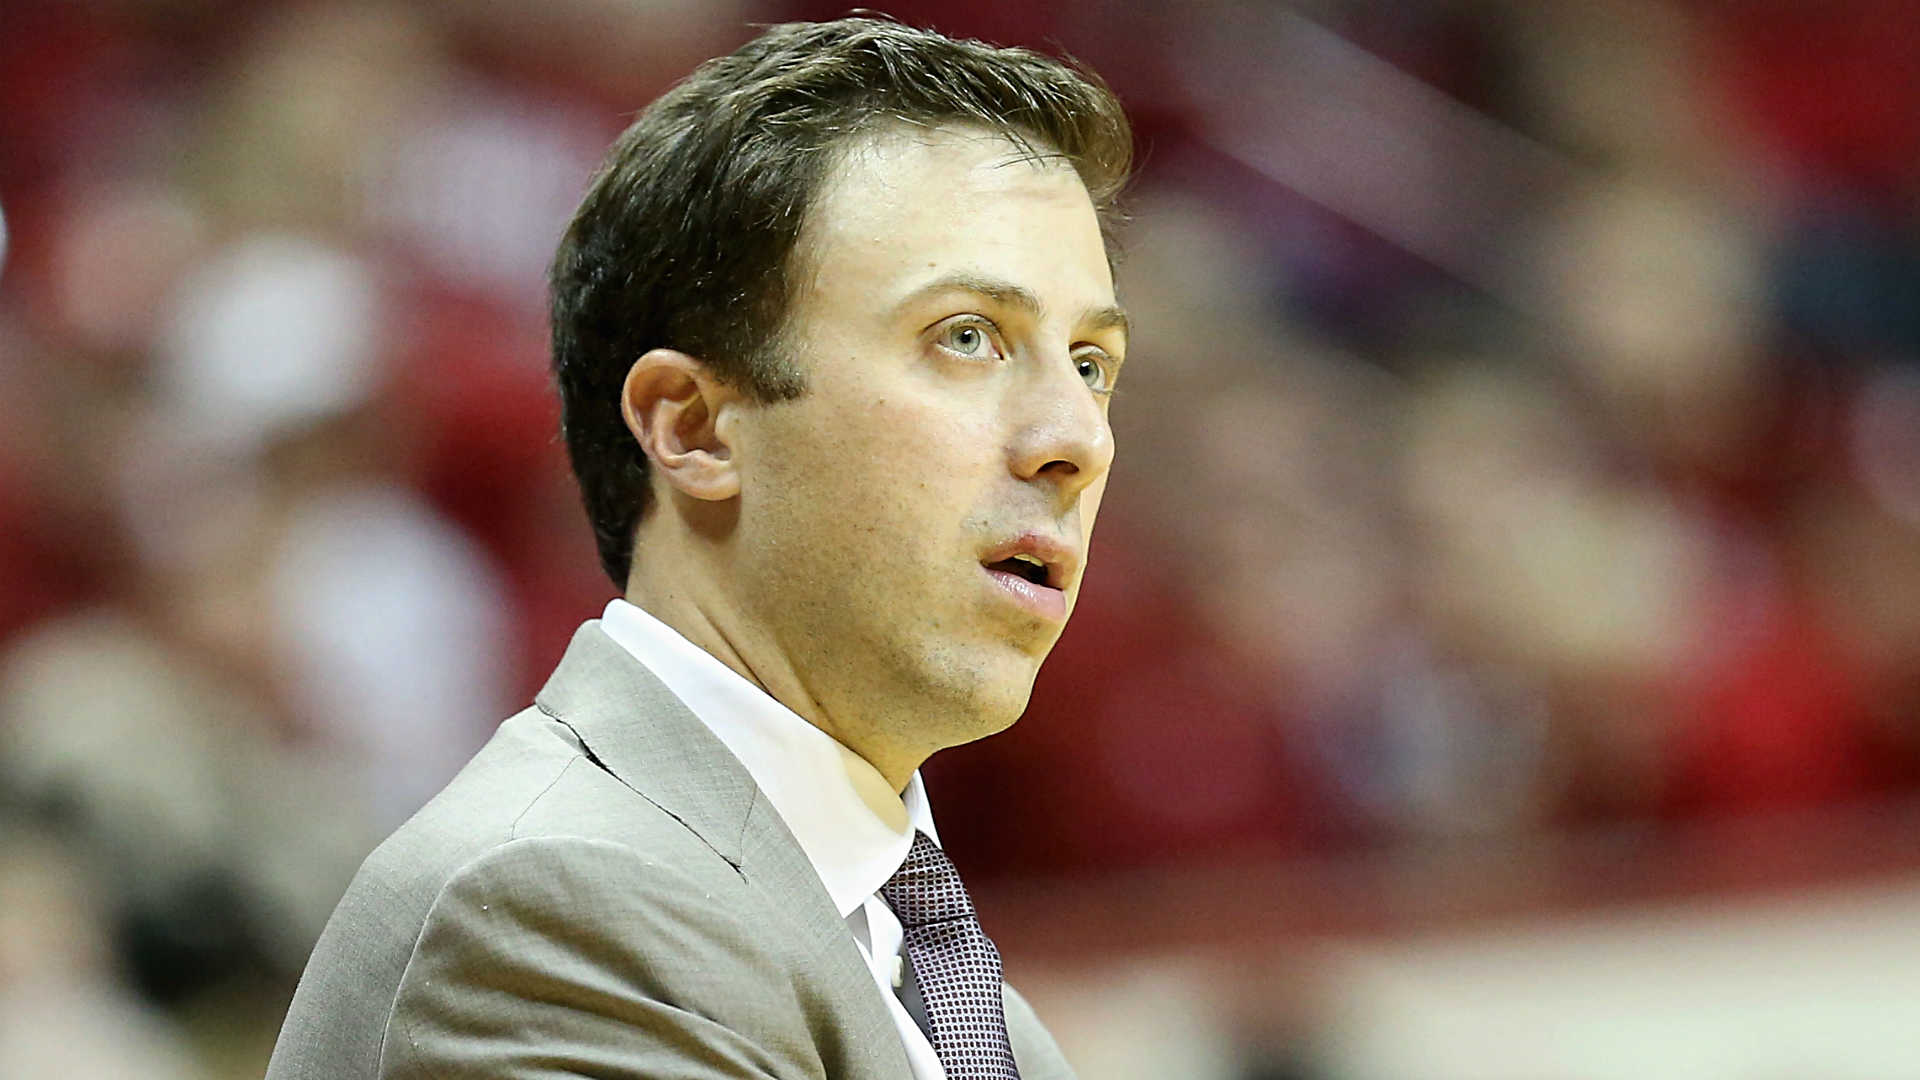 how tall is richard pitino